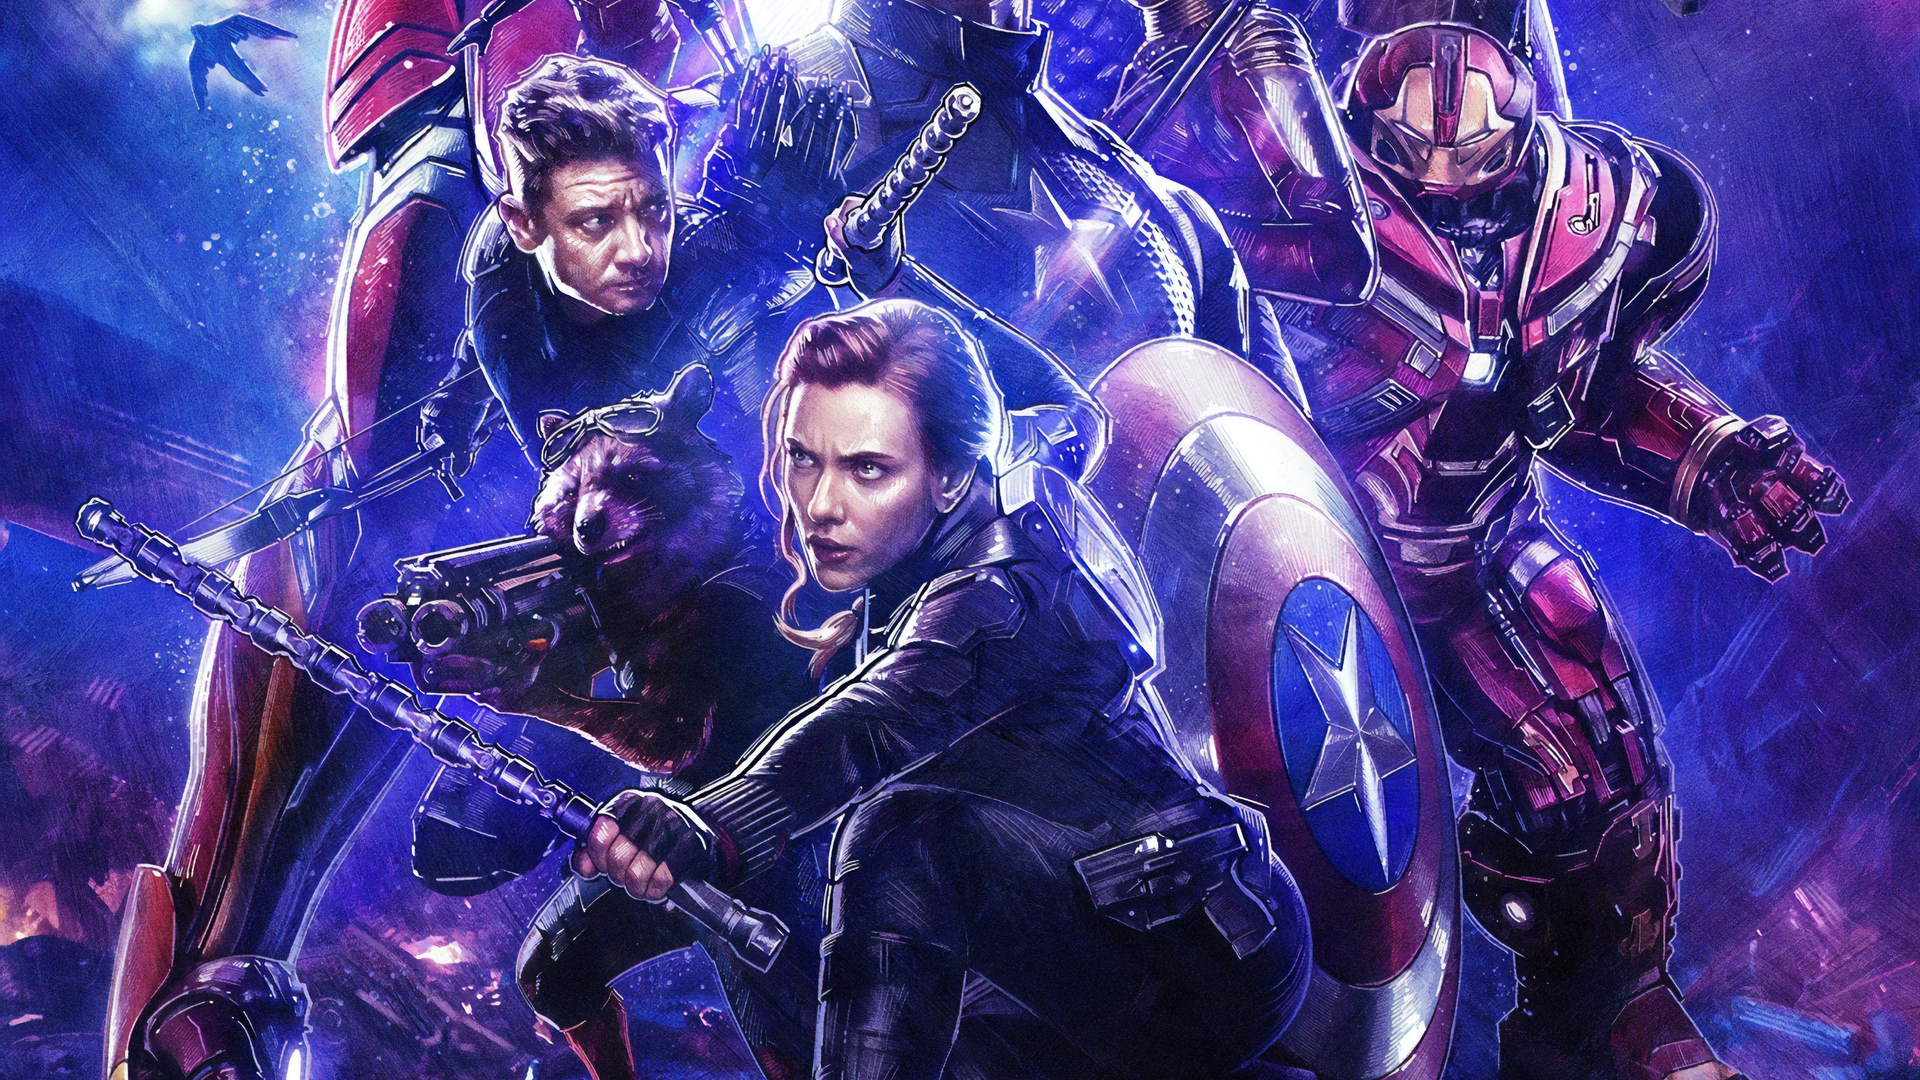 1920x1080 Avengers Endgame 4k Laptop Full Hd 1080p Hd 4k